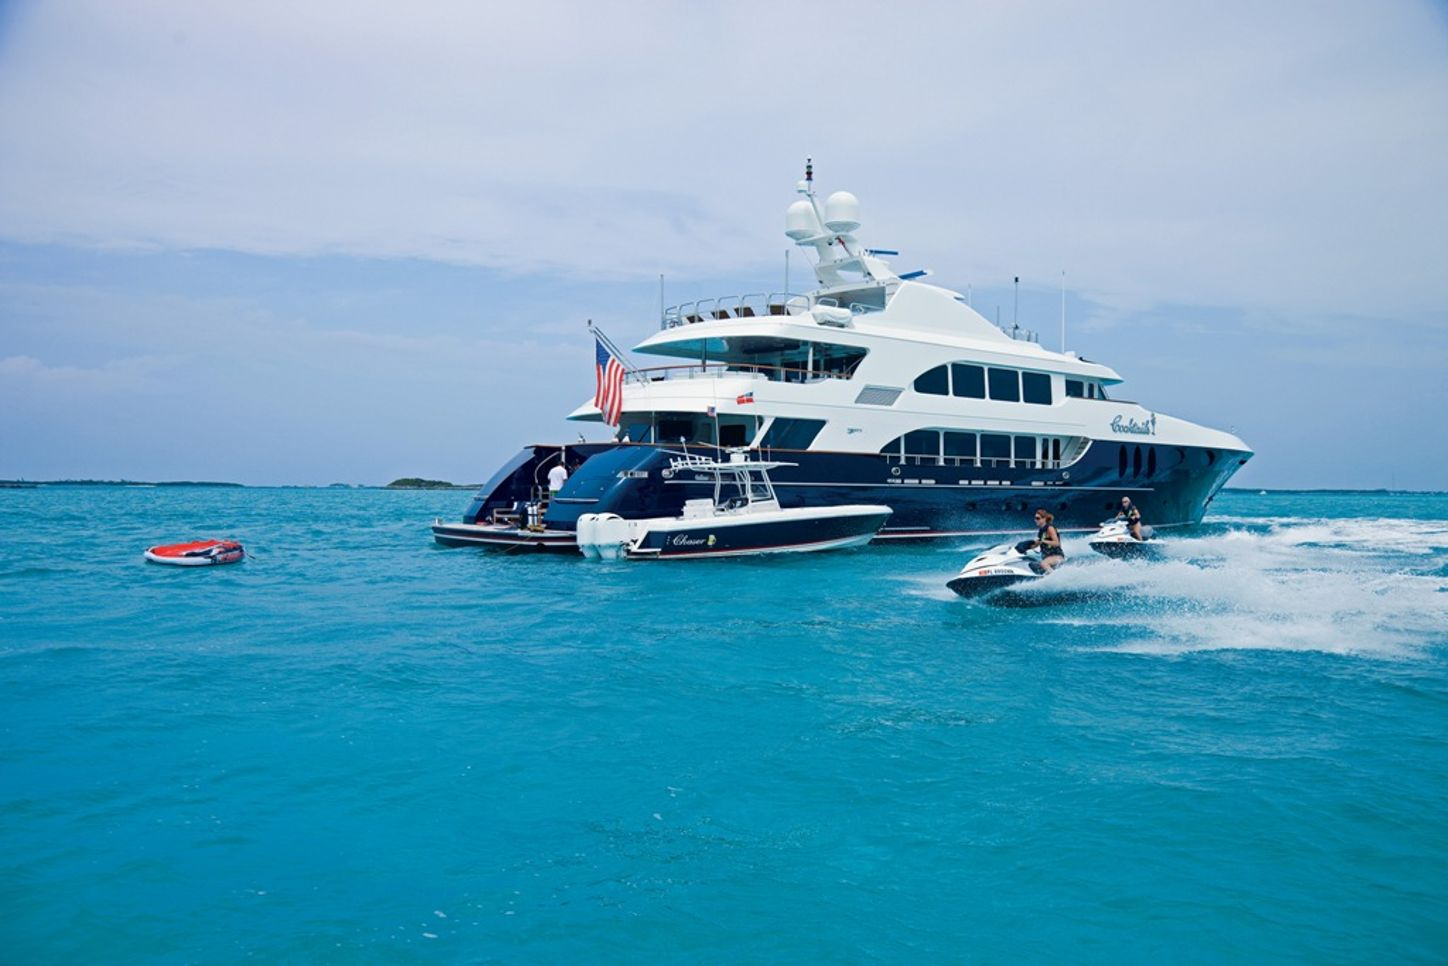 luxury motor yacht for charter alessandra, from trinity yachts, on the water showing off aft decks, with tenders in the water surrounding